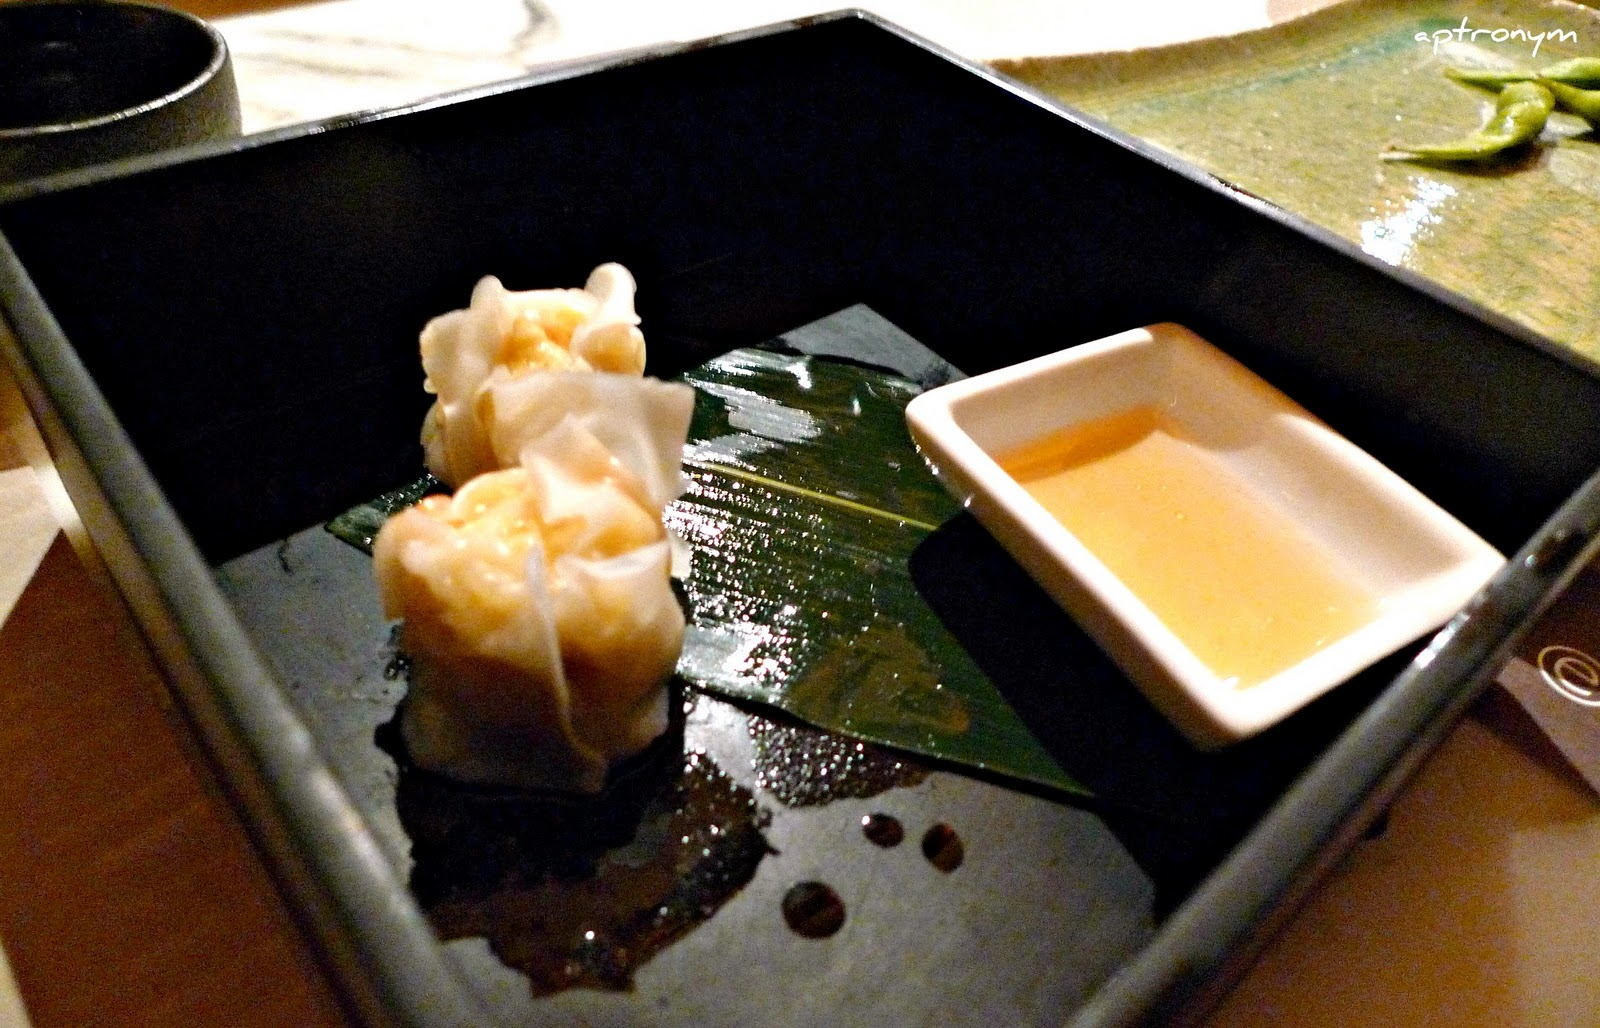 Chinese influenced steamed prawn dumpling with ponzu dipping sauce